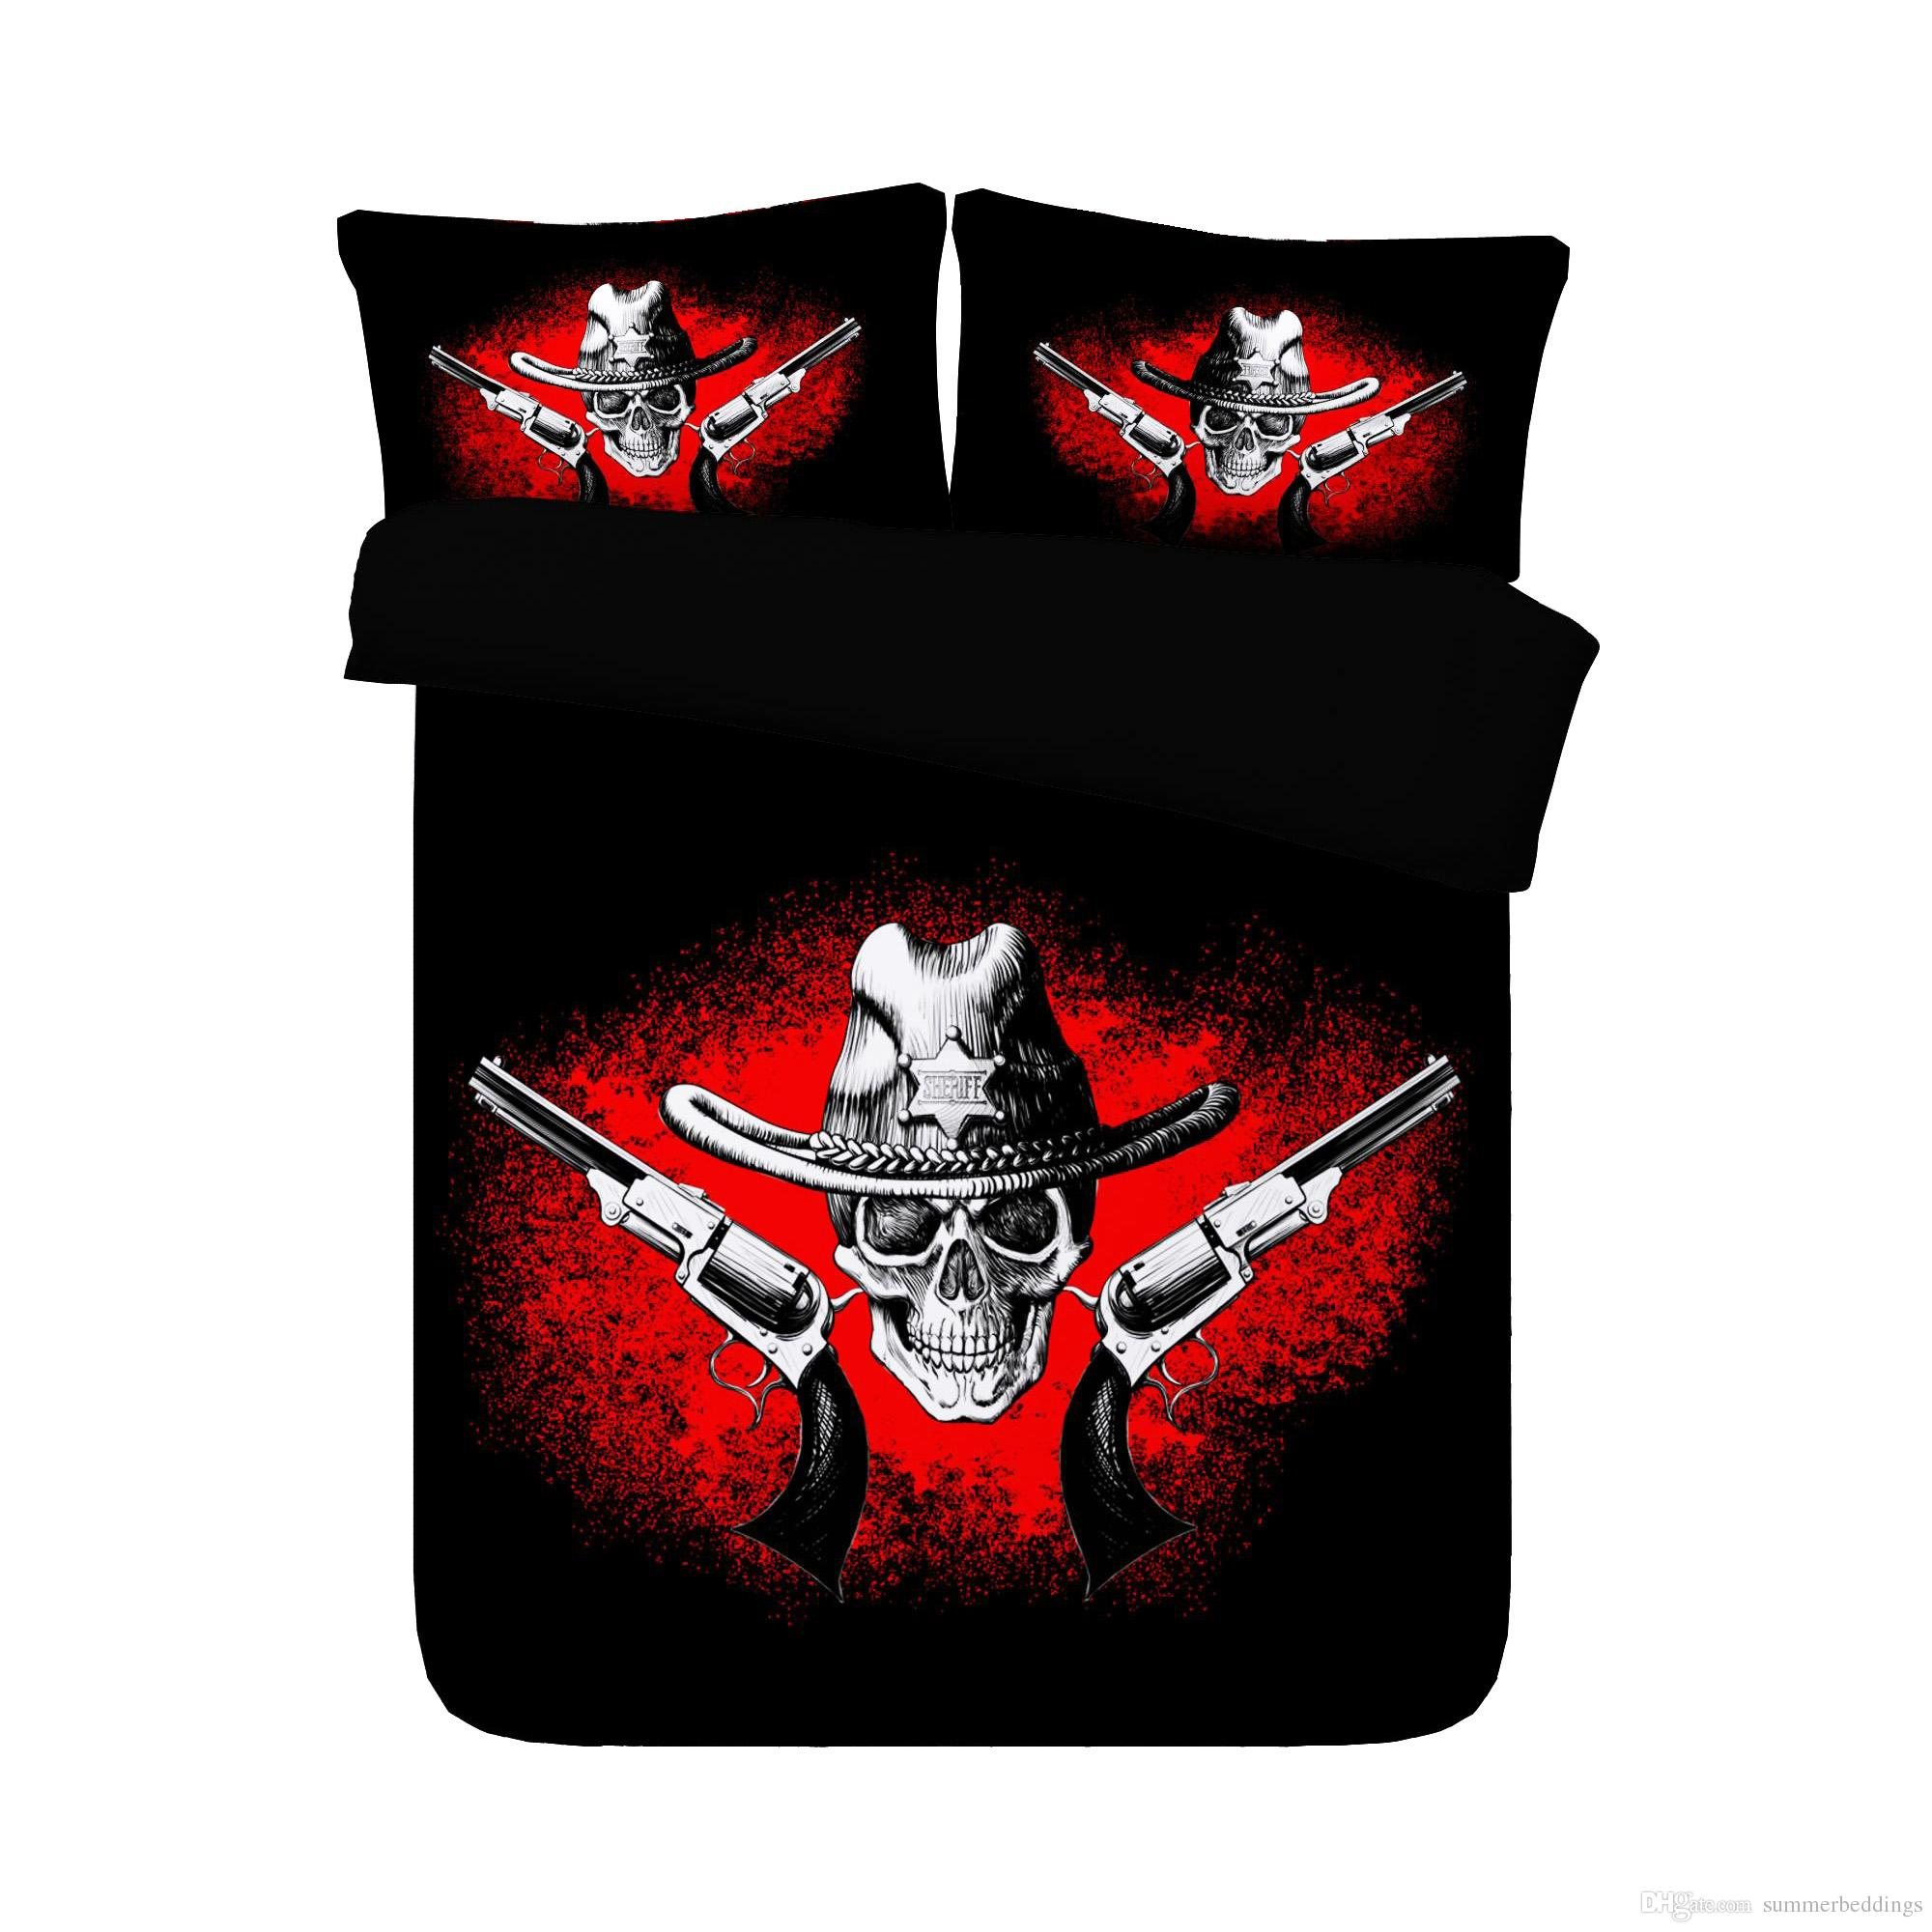 Music Decor Skeleton Duvet Cover Set 3 Piece Bedding Set With 2 Pillow Shams Skull With Headphones Record Player Mic Speakers Print